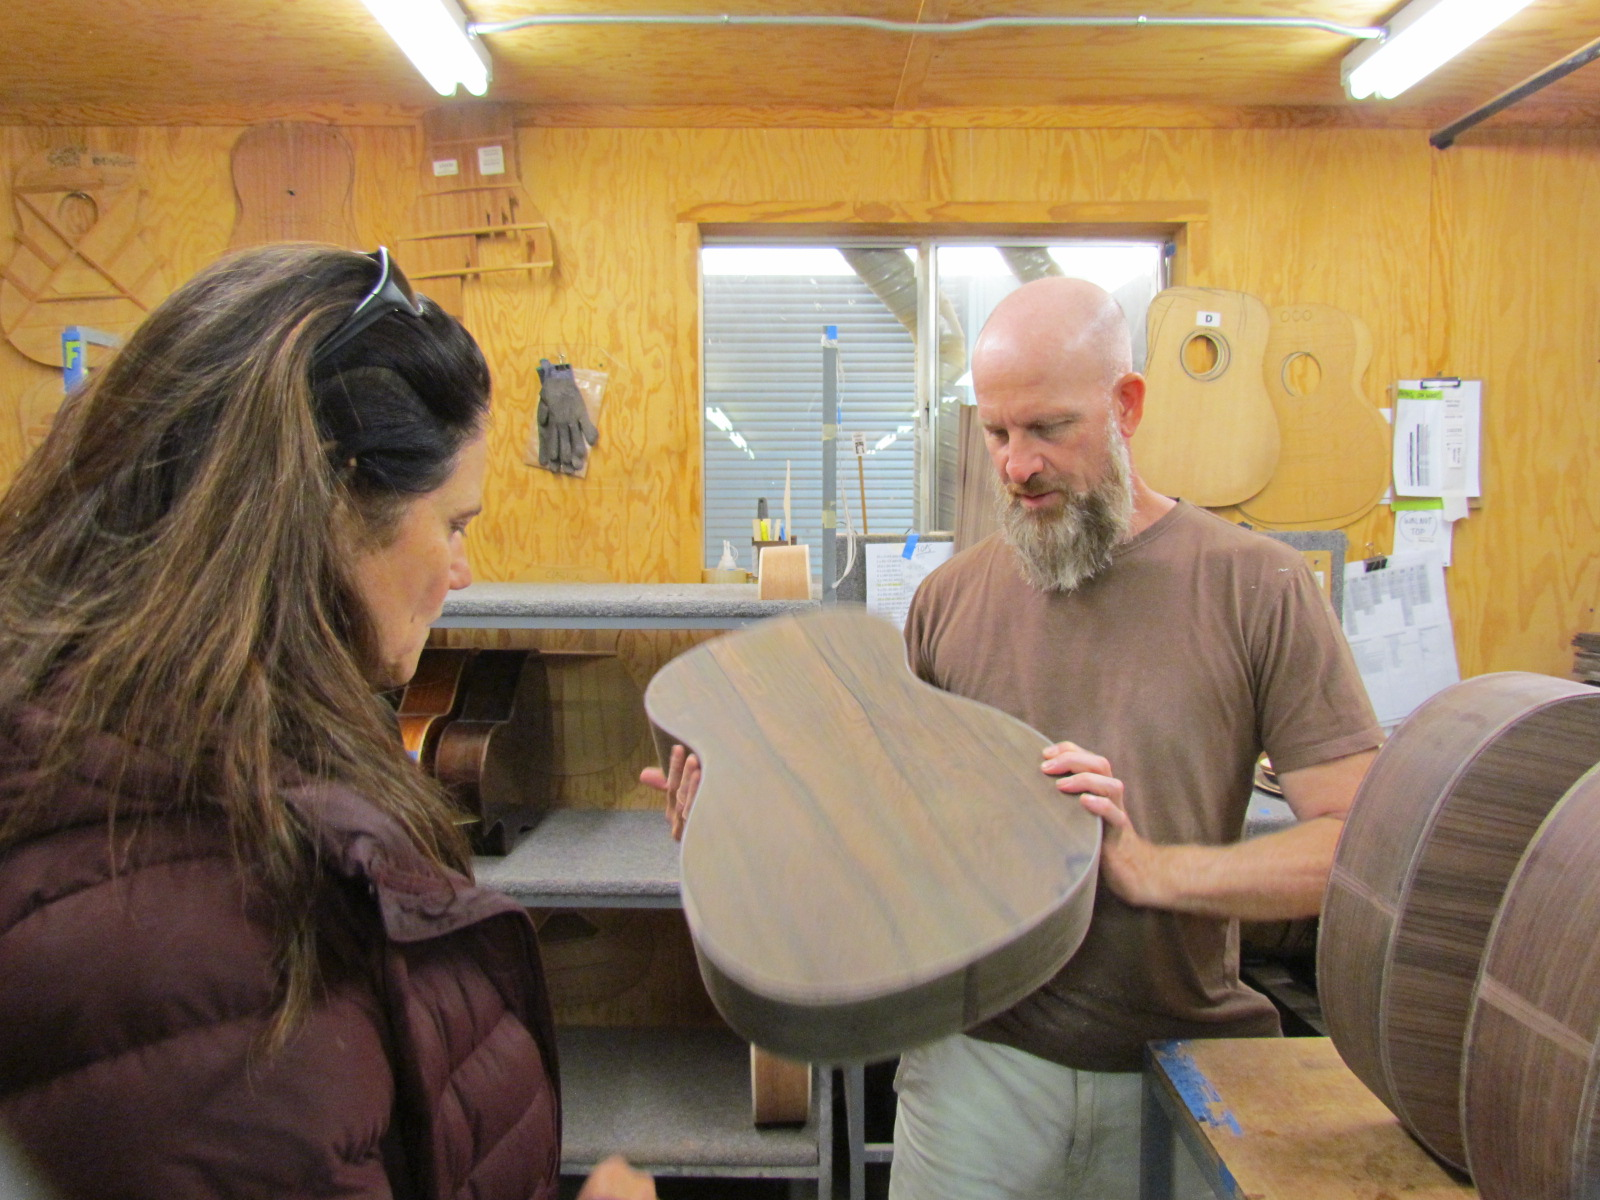 Jean from Larivee Guitar shows me (Nic) the cool woods that make these guitars exceptional. (I already knew that which is why I play them, but I loved hear about the intricacies of these fine instruments!)